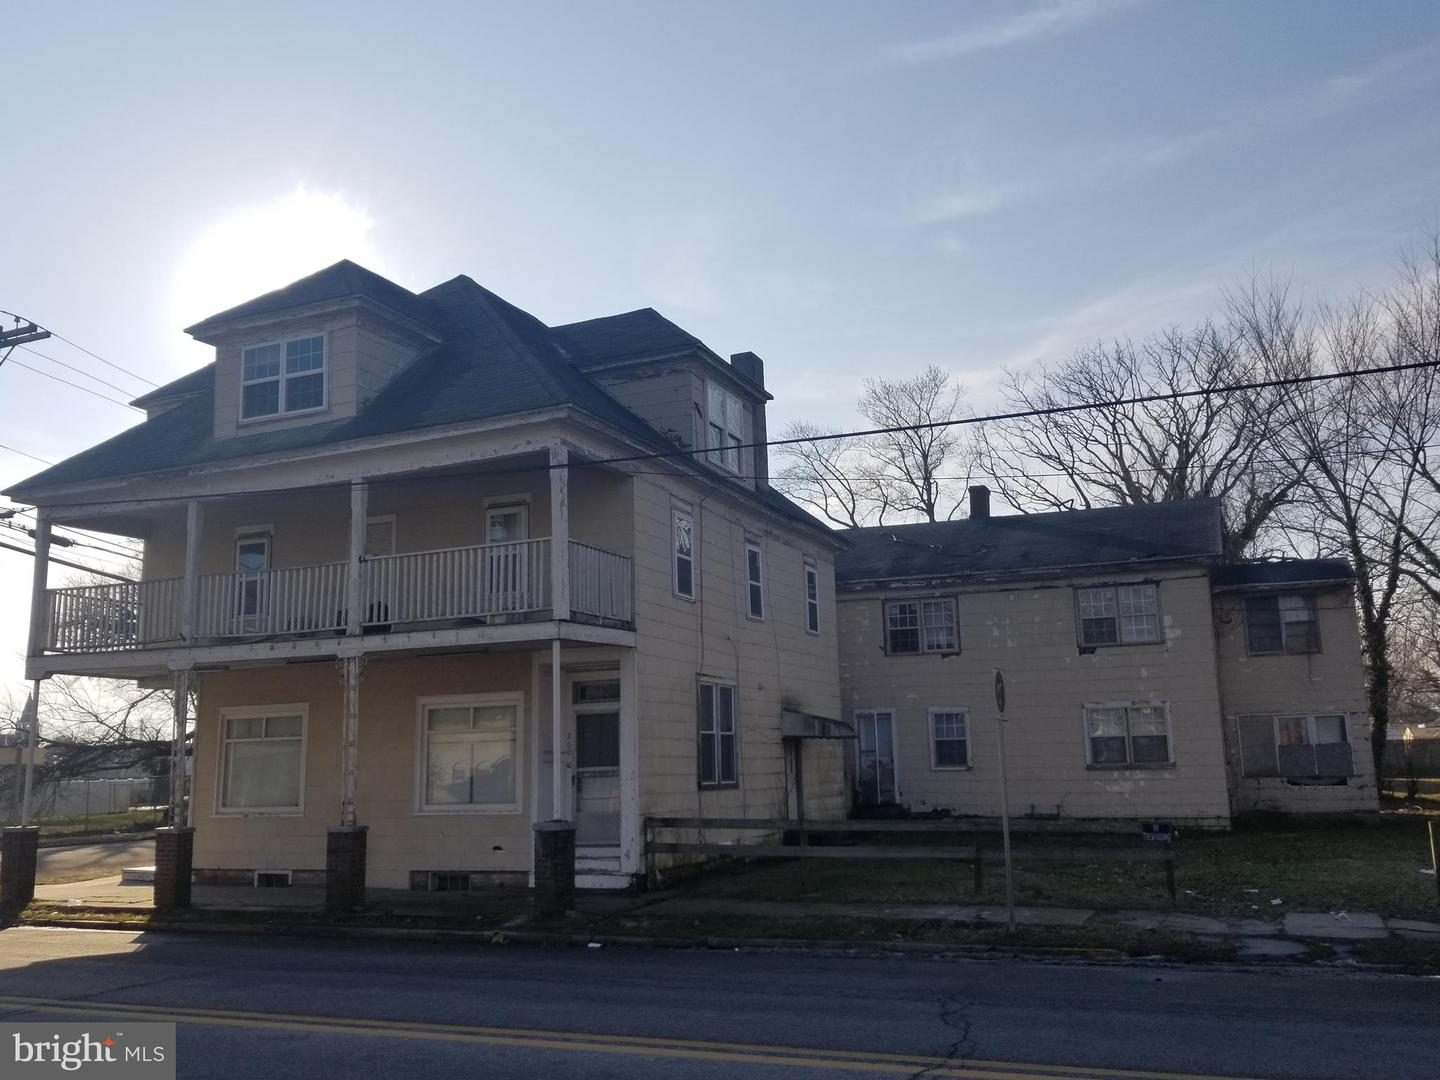 200 N Front St Seaford Delaware 19973 Commercial For Sale